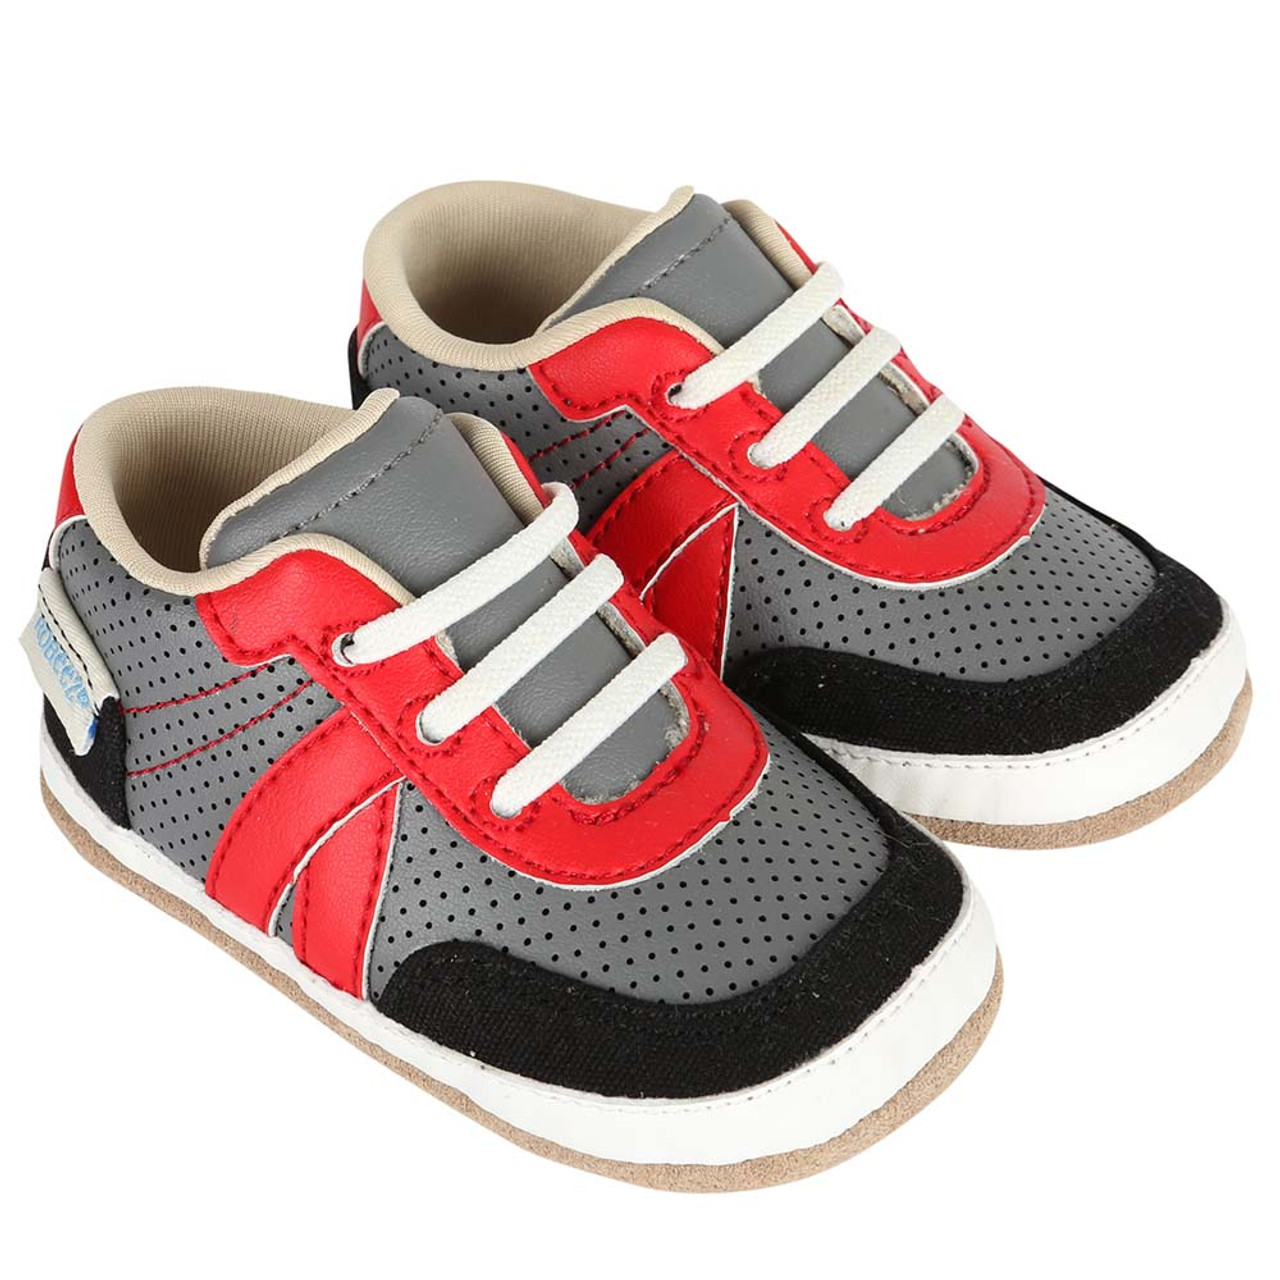 5e1a53dc90b Baby shoes for boys and girls that look like athletic shoes for mom or dad.